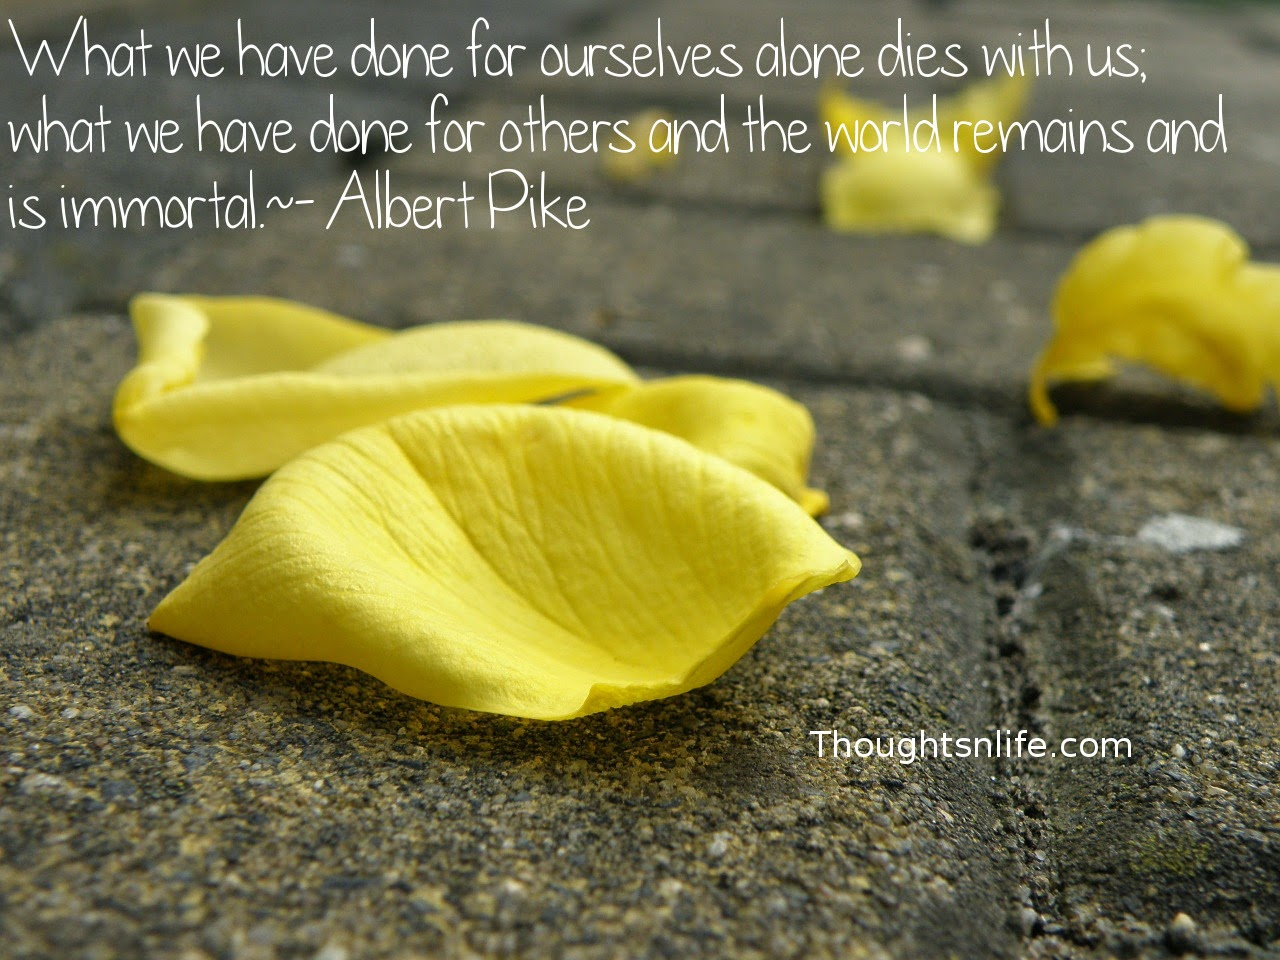 Thoughtsnlife.com: What we have done for ourselves alone dies with us; what we have done for others and the world remains and is immortal. - Albert Pike